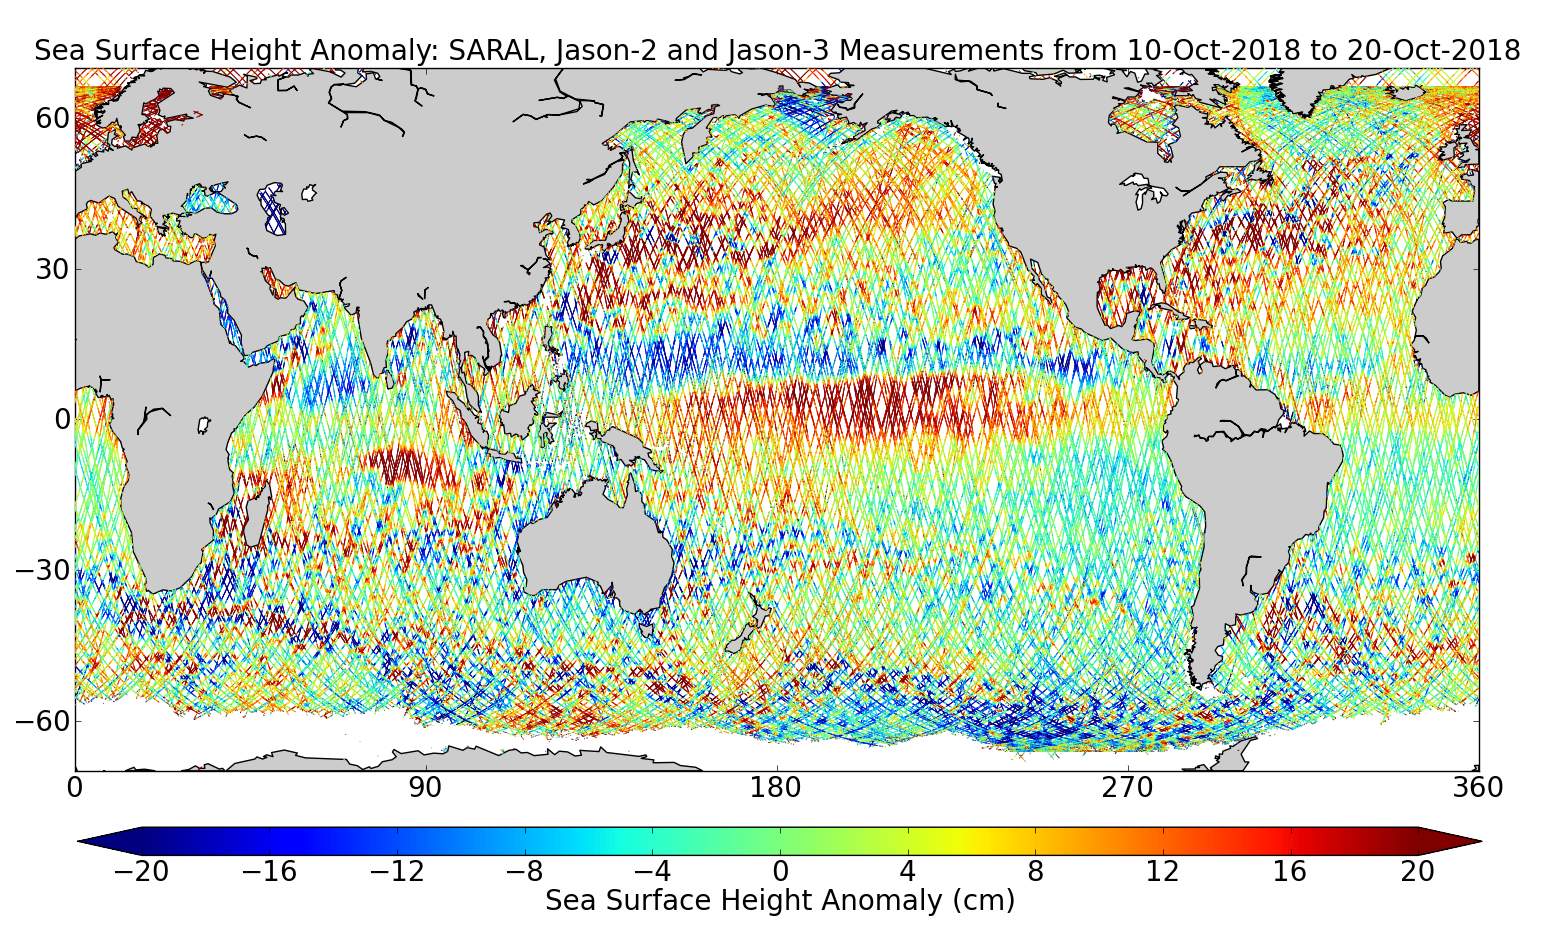 Sea Surface Height Anomaly: SARAL, Jason-2 and Jason-3 Measurements from 10-Oct-2018 to 20-Oct-2018